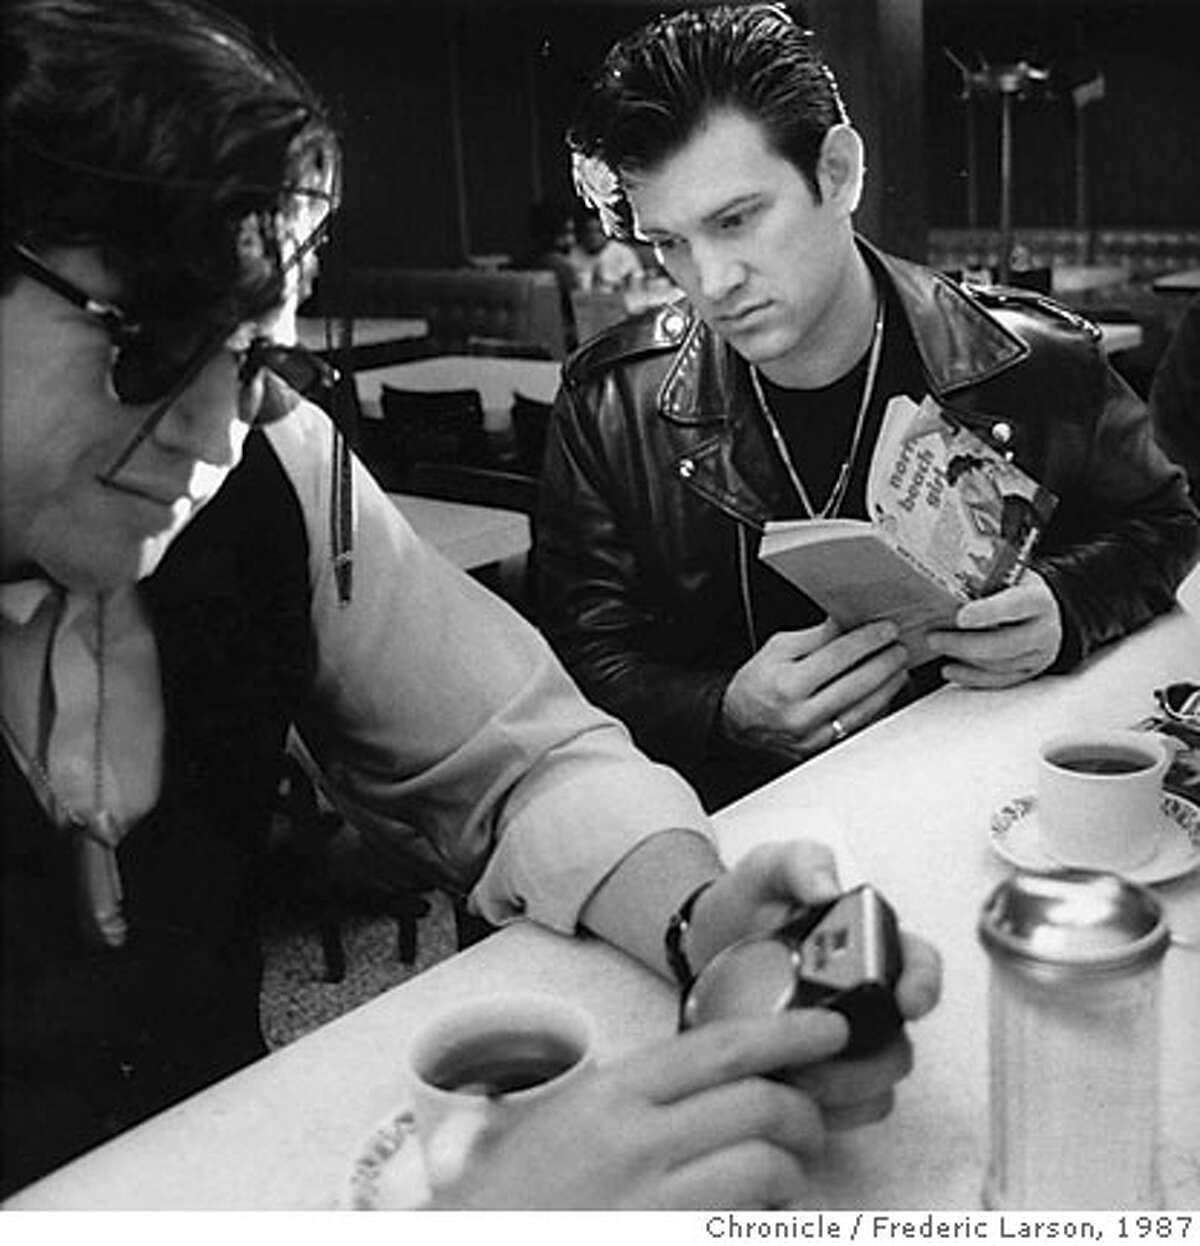 CHRIS ISAAK AND HIS OWN LOOK OF FASHION WITH DRUMMER KENNY DALE JOHNSON AT LEFT. SHOT ON LOCATION IN CHINATOWN